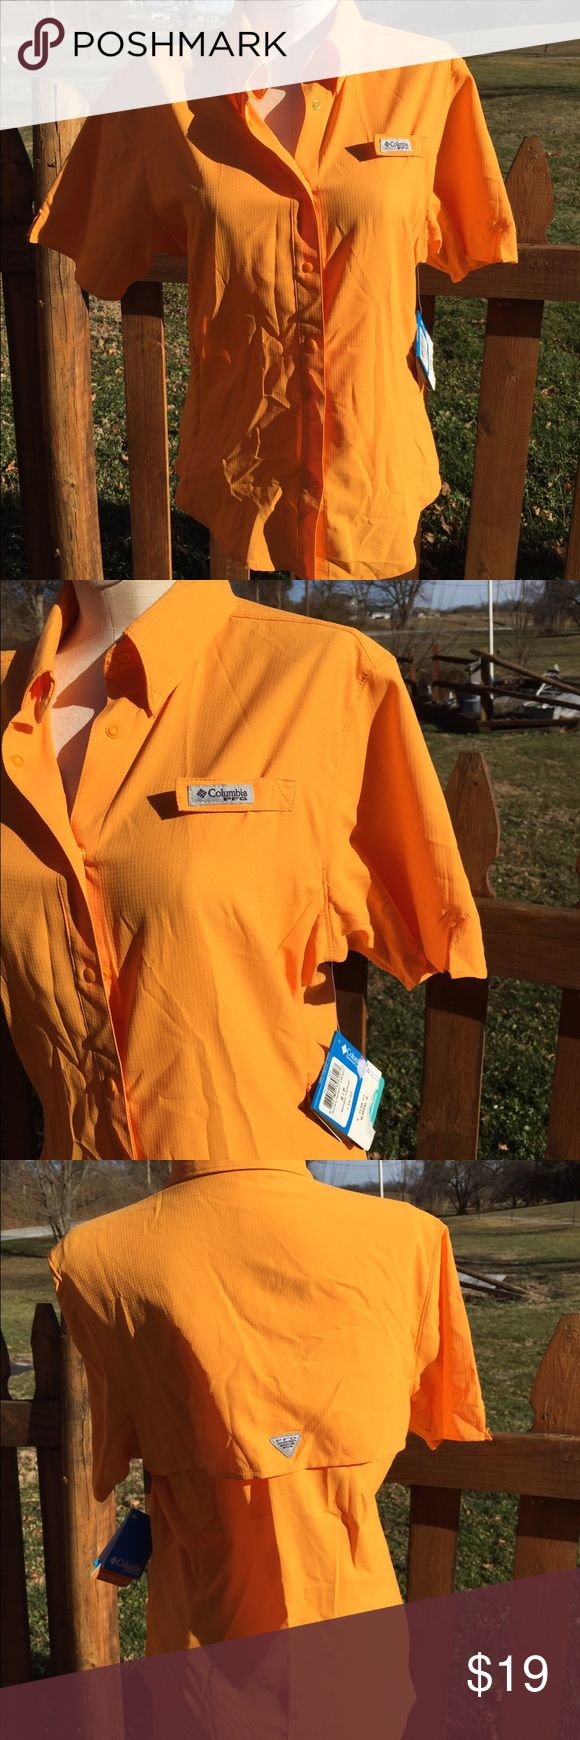 Columbia PFG Tamiami Shirt Size Small New wTags New with tags. Size small. Snap type buttons. Be sure to view the other items in our closet. We offer both women's and Mens items in a variety of sizes. Bundle and save!! Thank you for viewing our item!! Columbia Tops Button Down Shirts